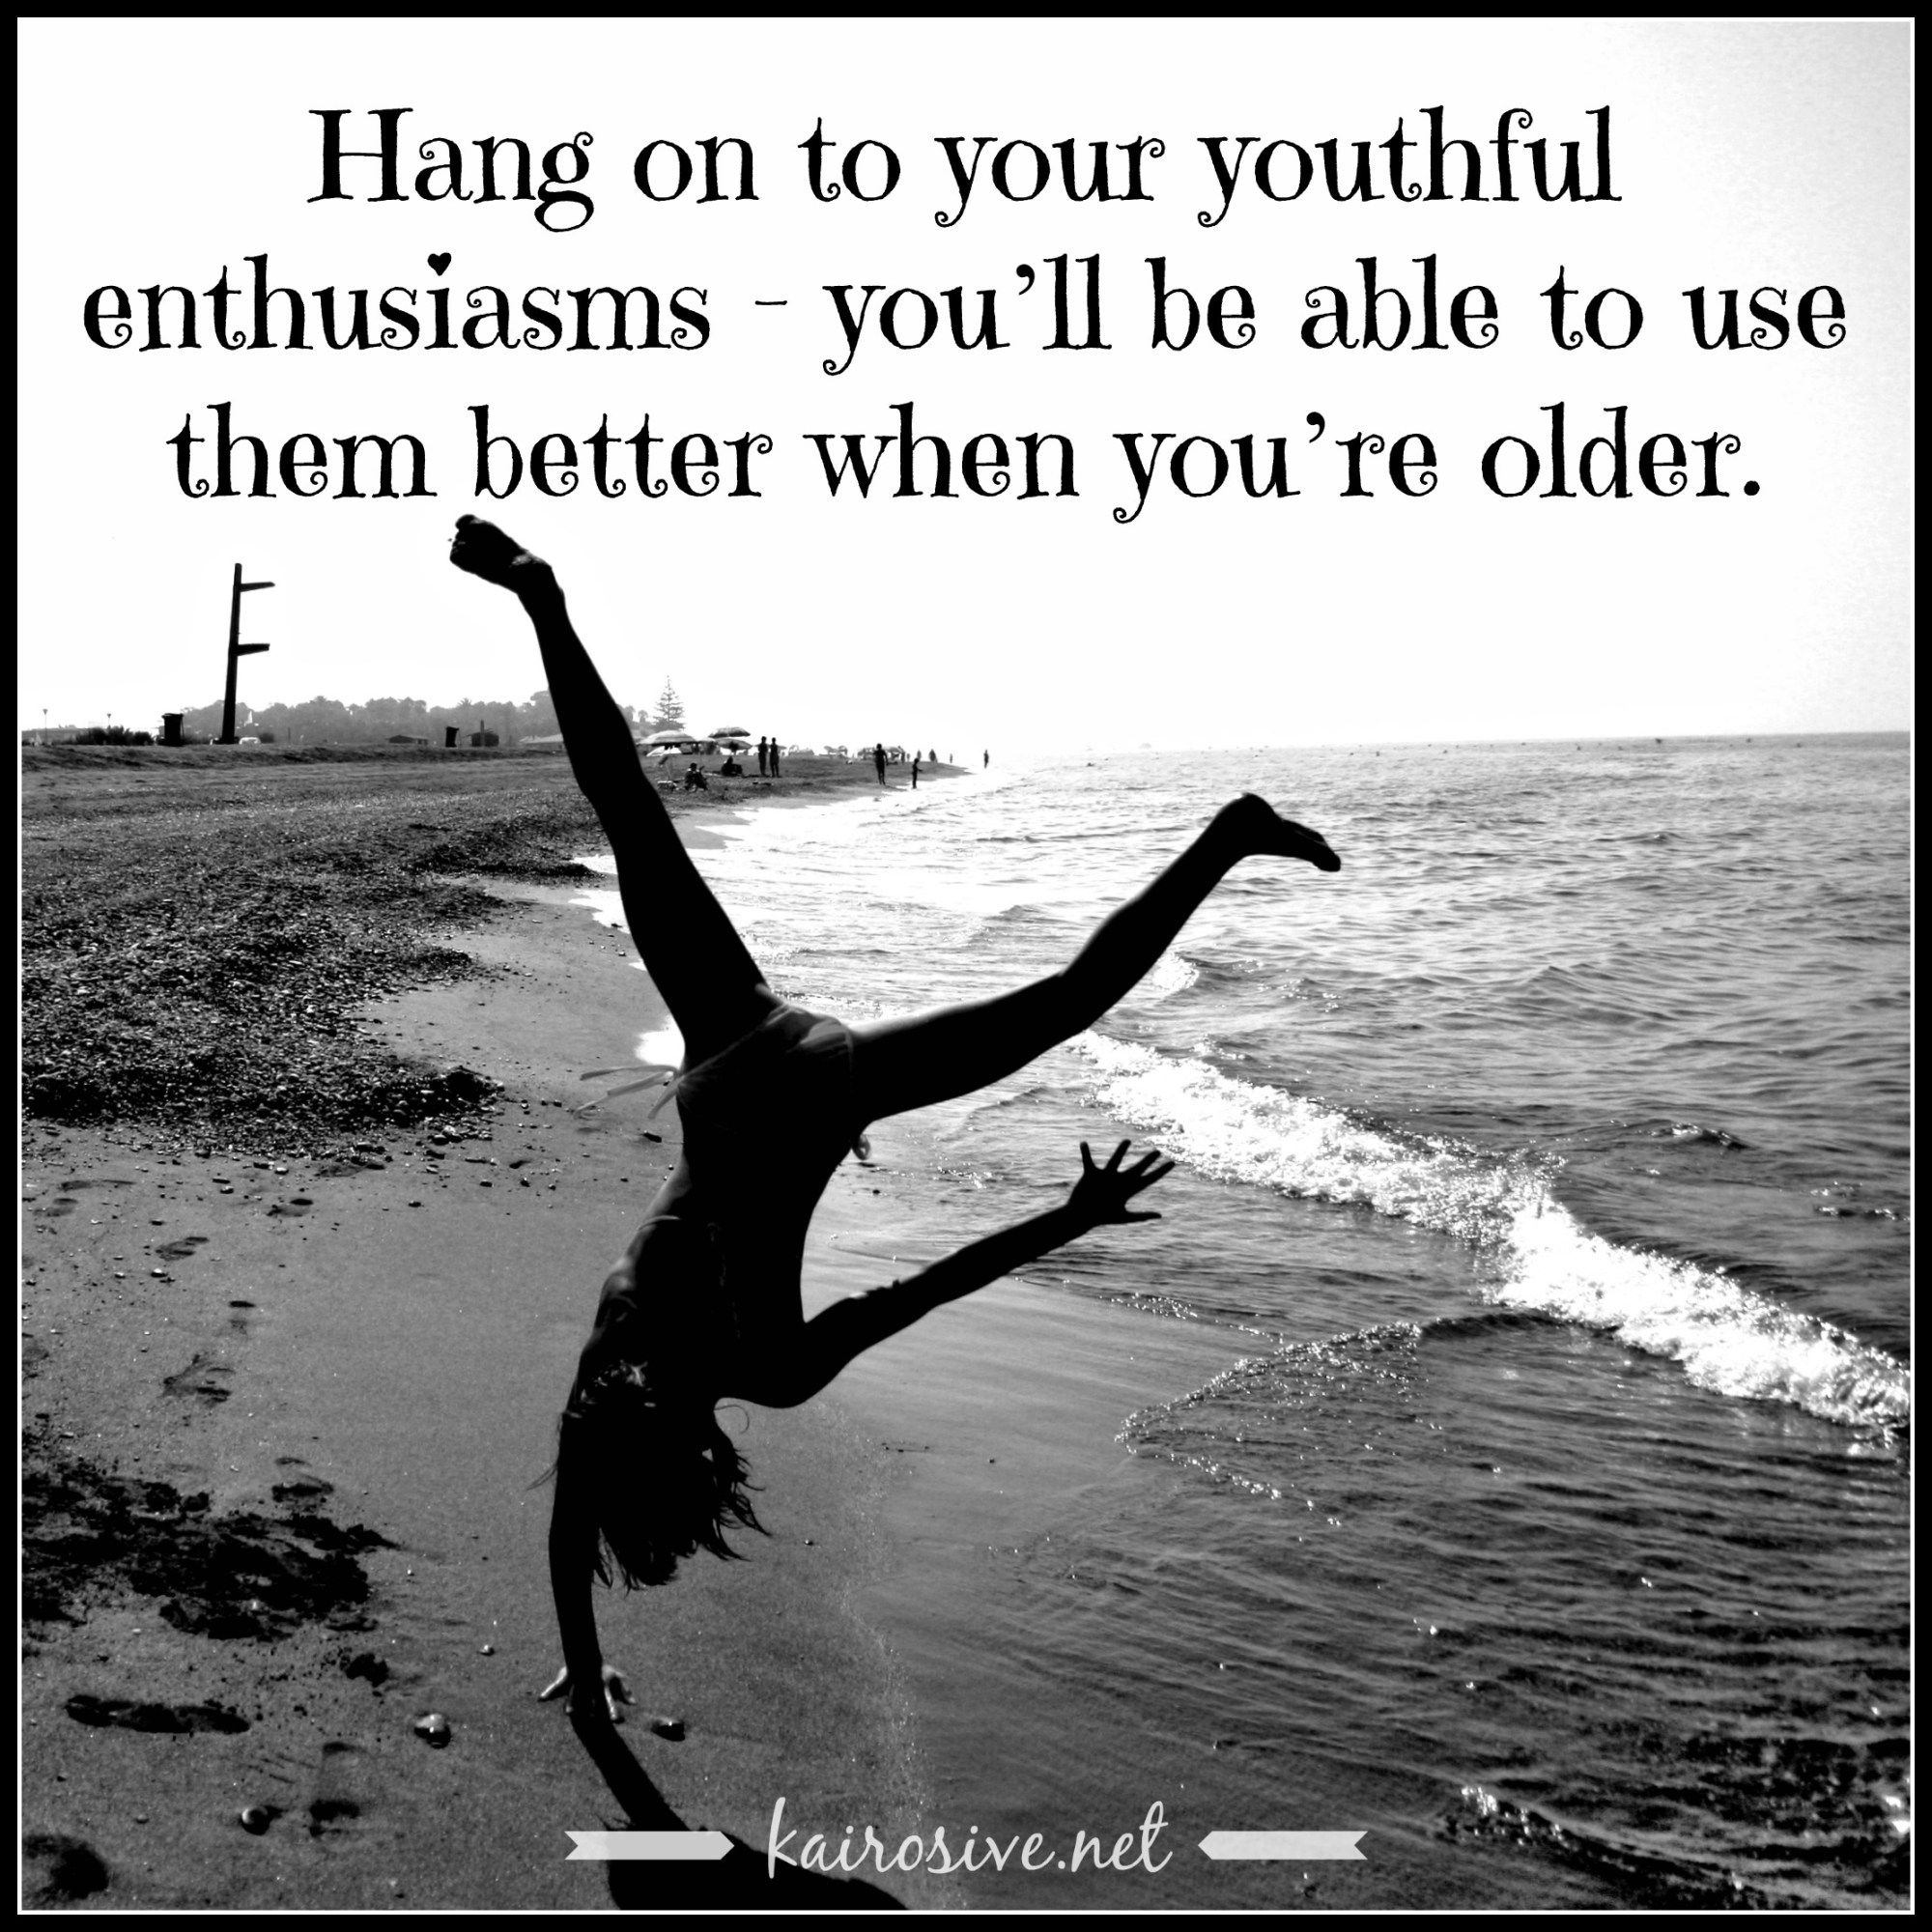 """Hang on to your youthful enthusiasms - you'll be able to use them better when you're older.""  ― Seneca"